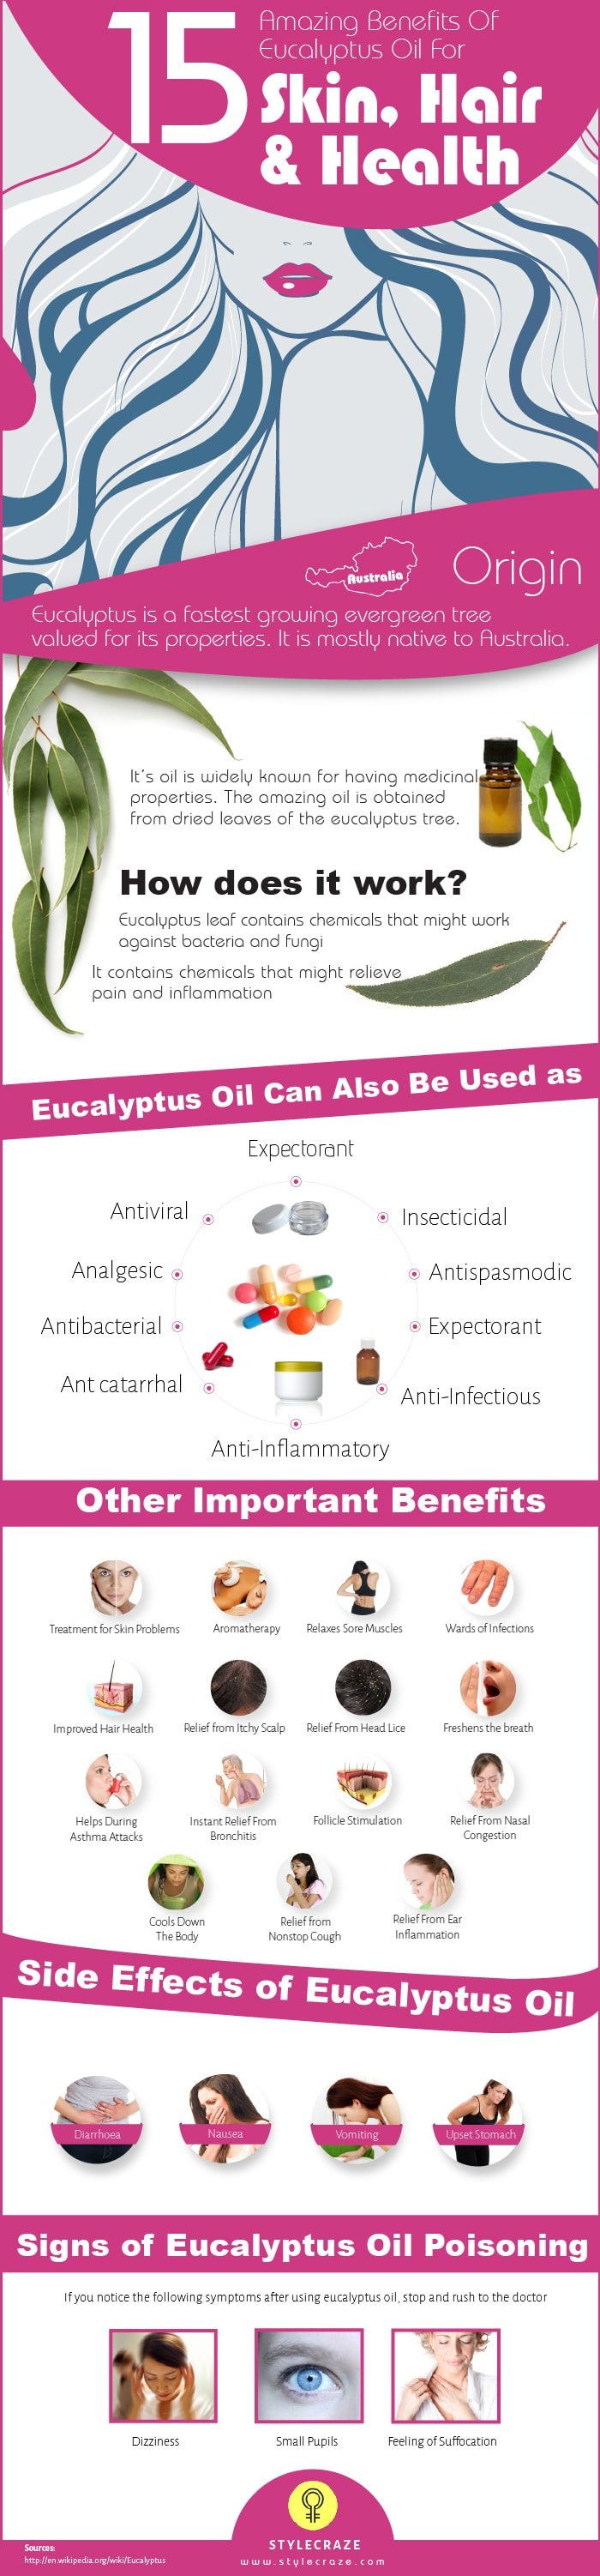 Benefits Of Eucalyptus Oil For Skin, Hair Health